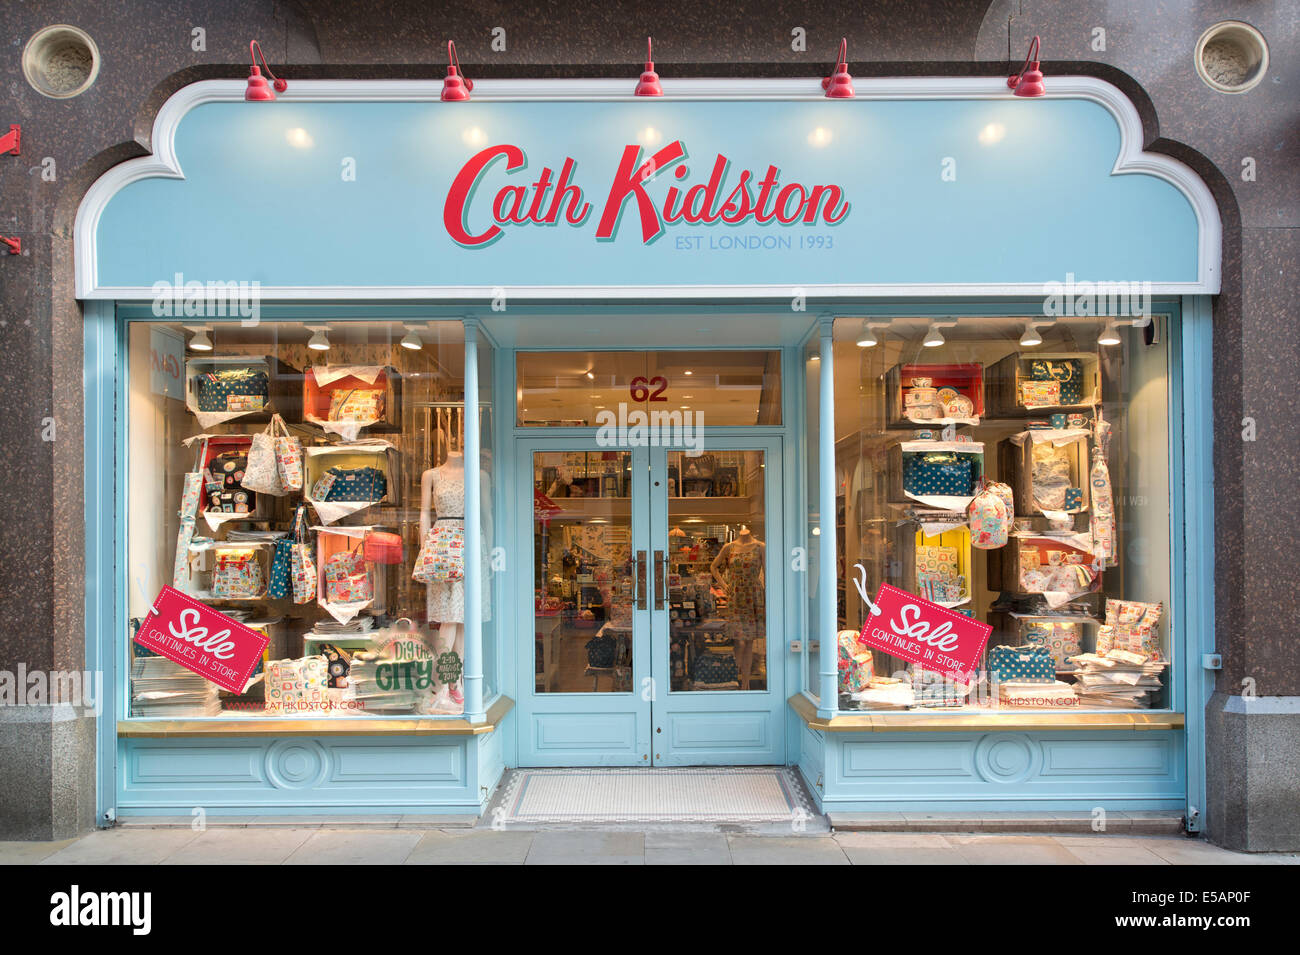 The Storefront Of The Home Furnishing And Fashion Retailer Cath Stock Photo 72151535 Alamy